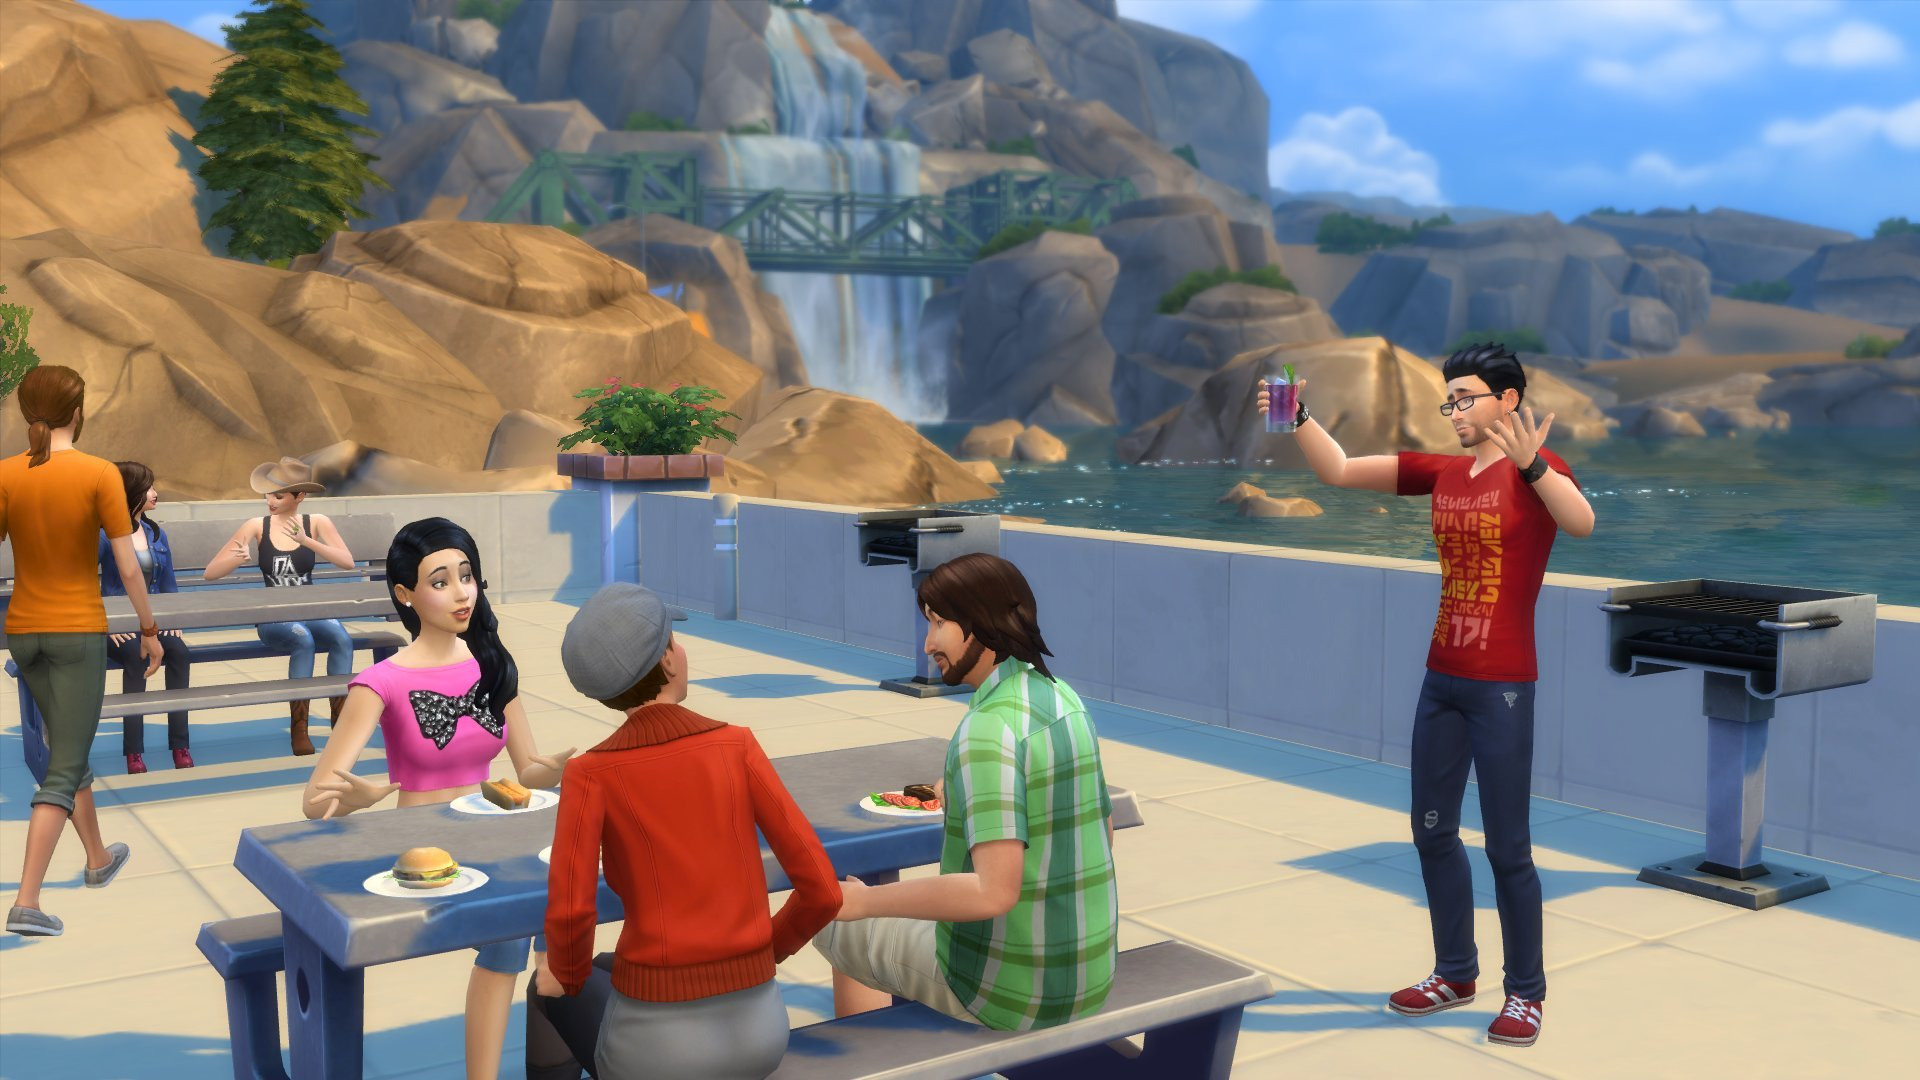 The Sims 4 [Online Game Code] by Electronic Arts (Image #5)